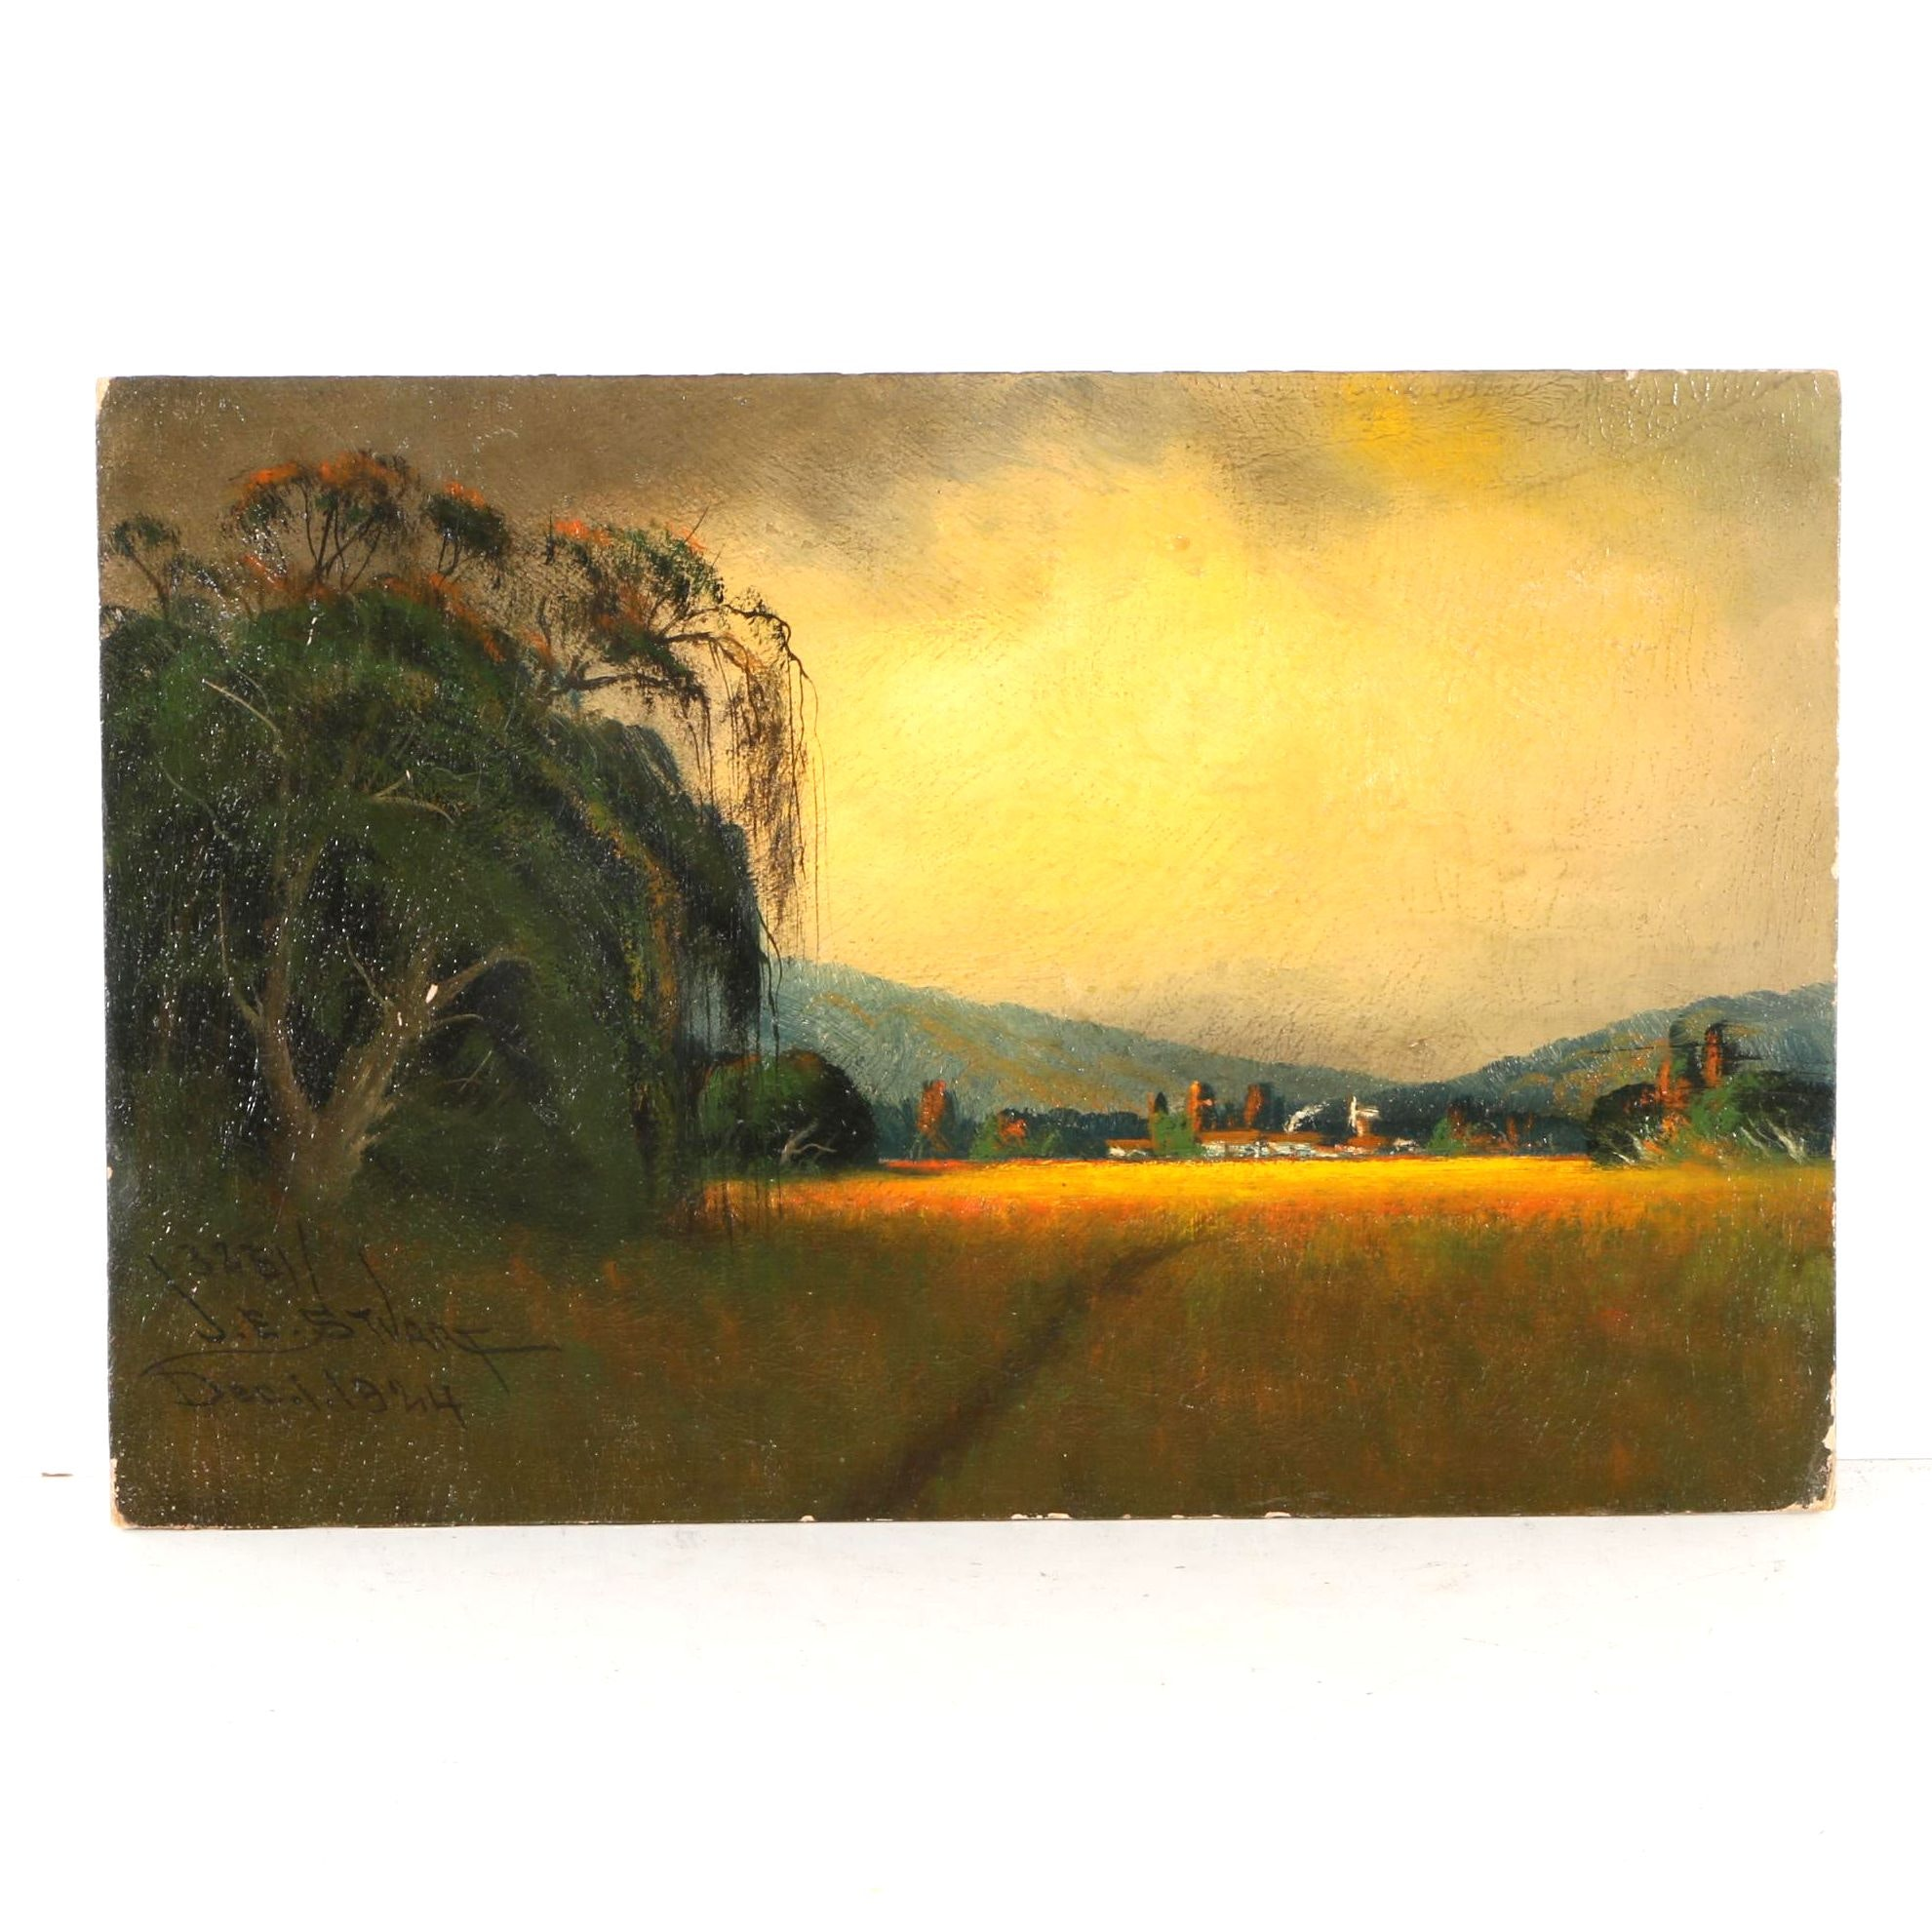 1924 James Everett Stuart Oil on Board of Landscape Near Napa Valley, CA